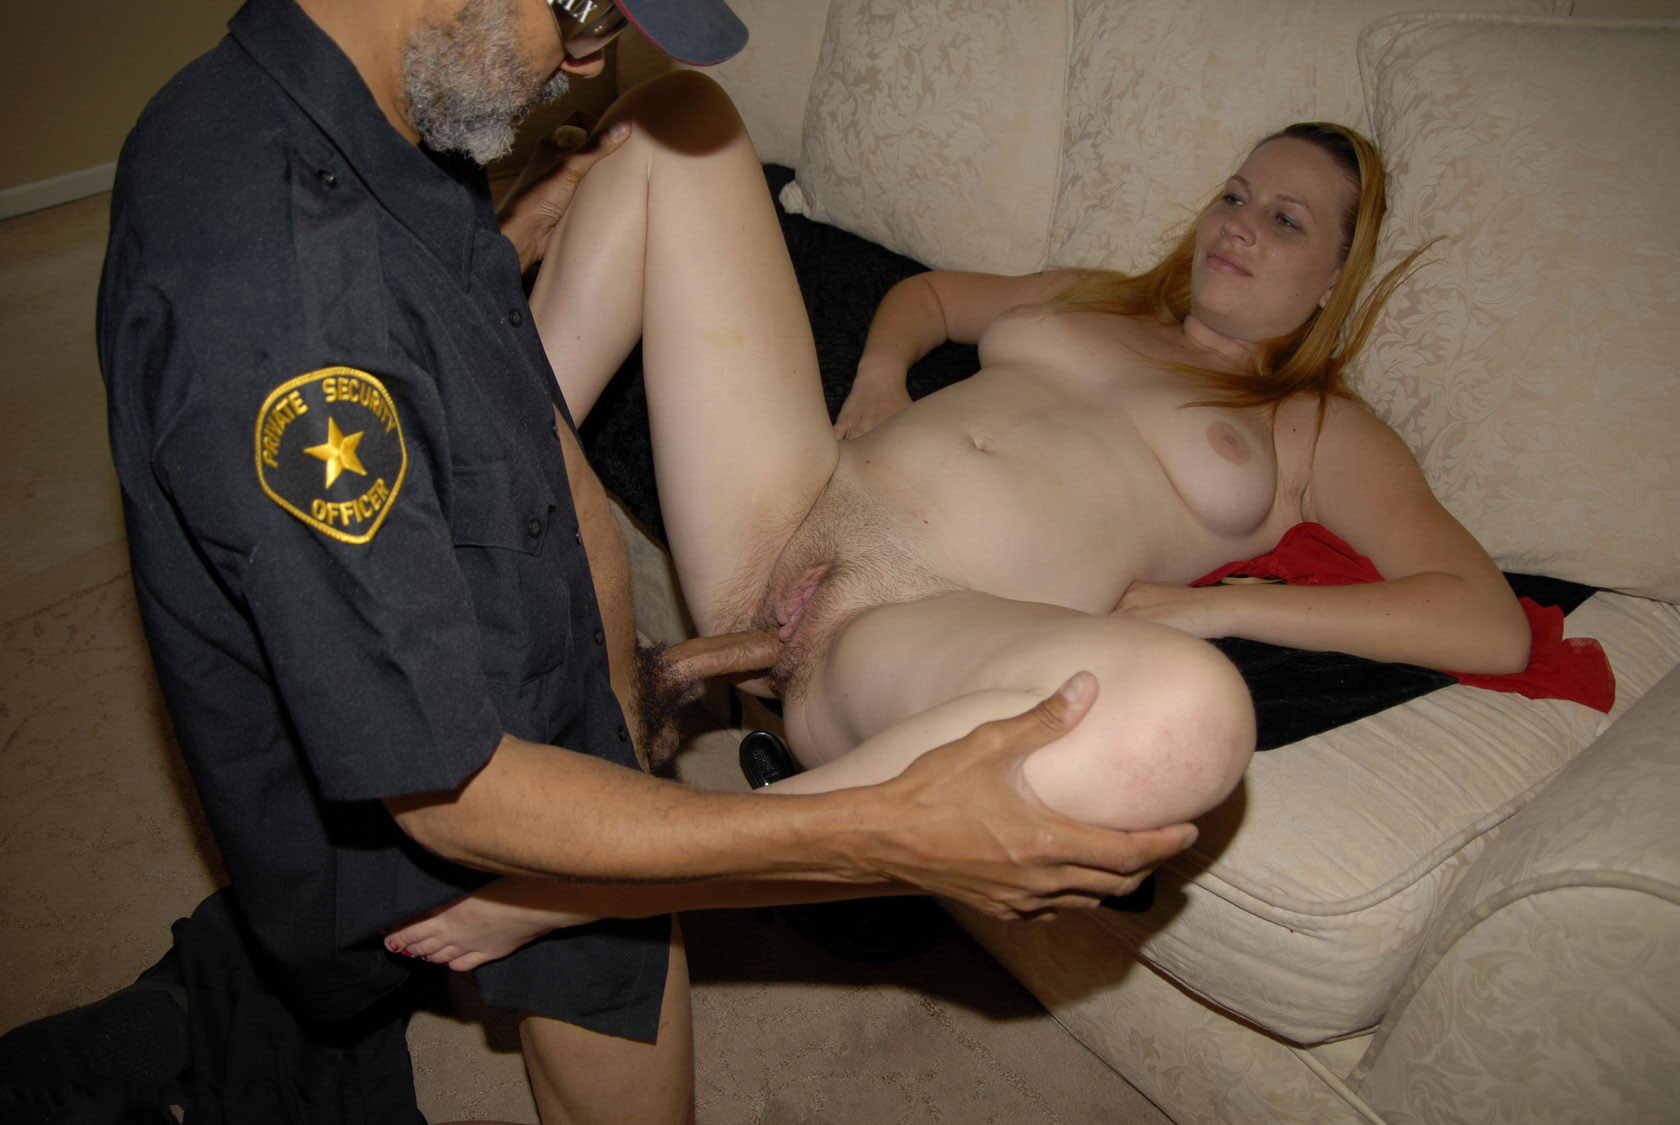 Nude dirty old pervert — pic 15